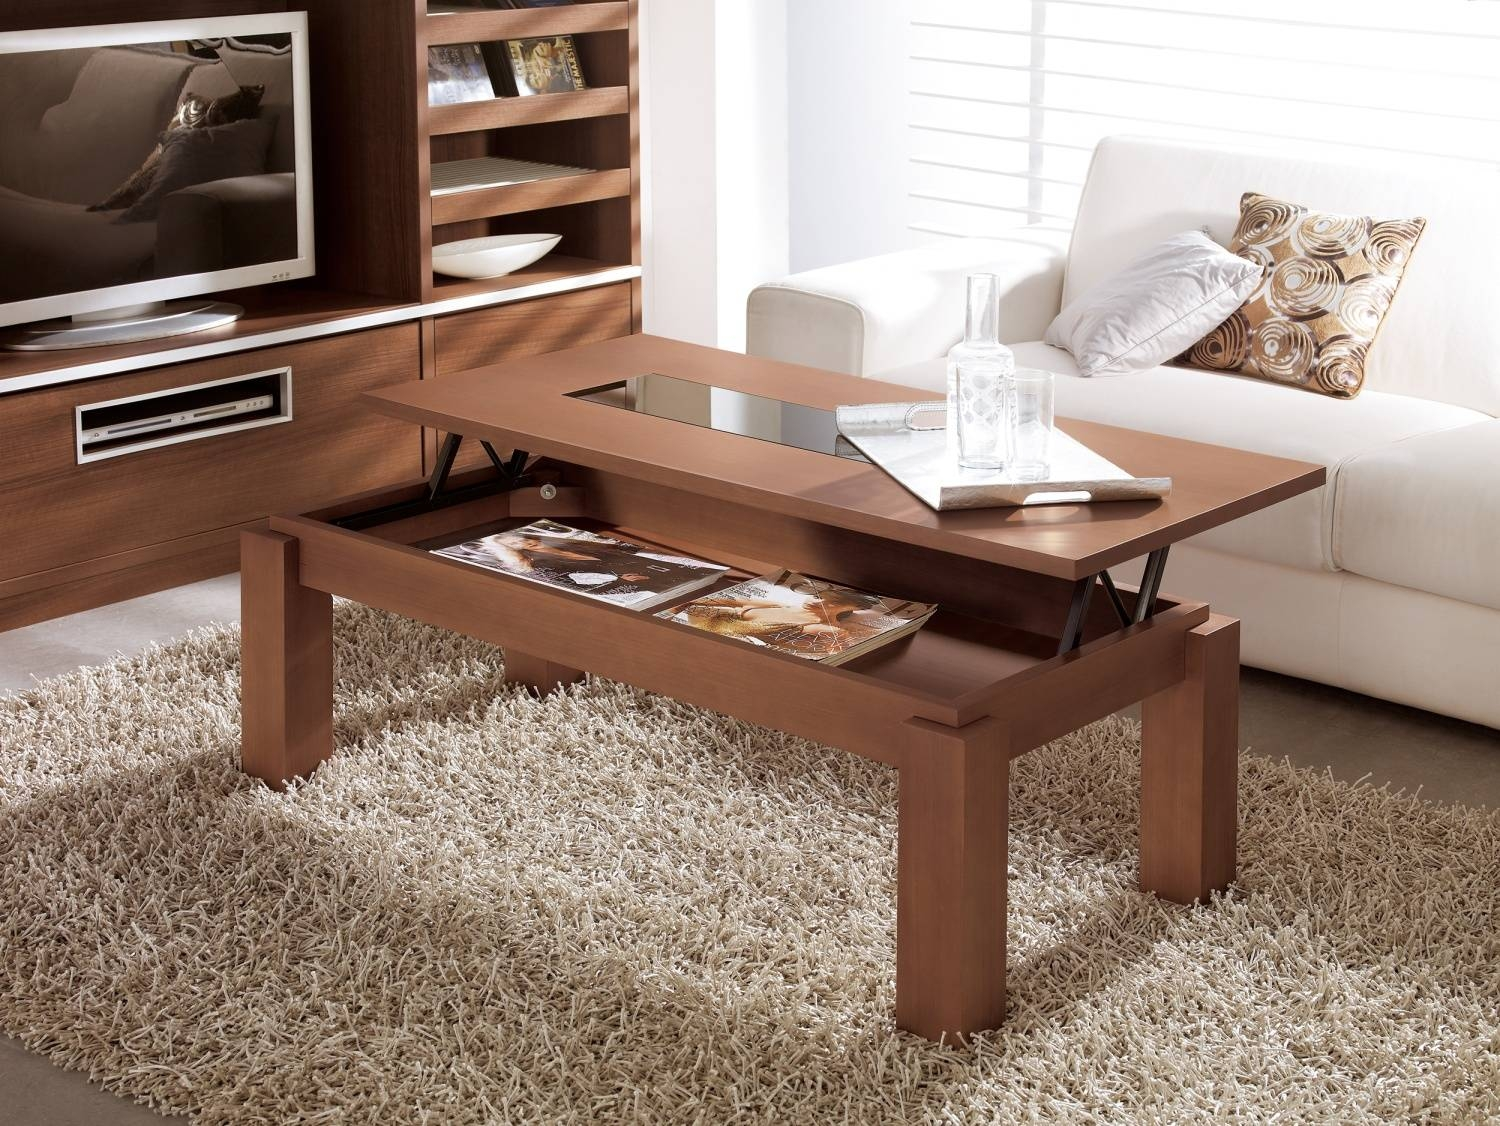 Coffee Table With Lift Up Top Uk | Coffee Tables Decoration pertaining to Lift Up Coffee Tables (Image 9 of 30)